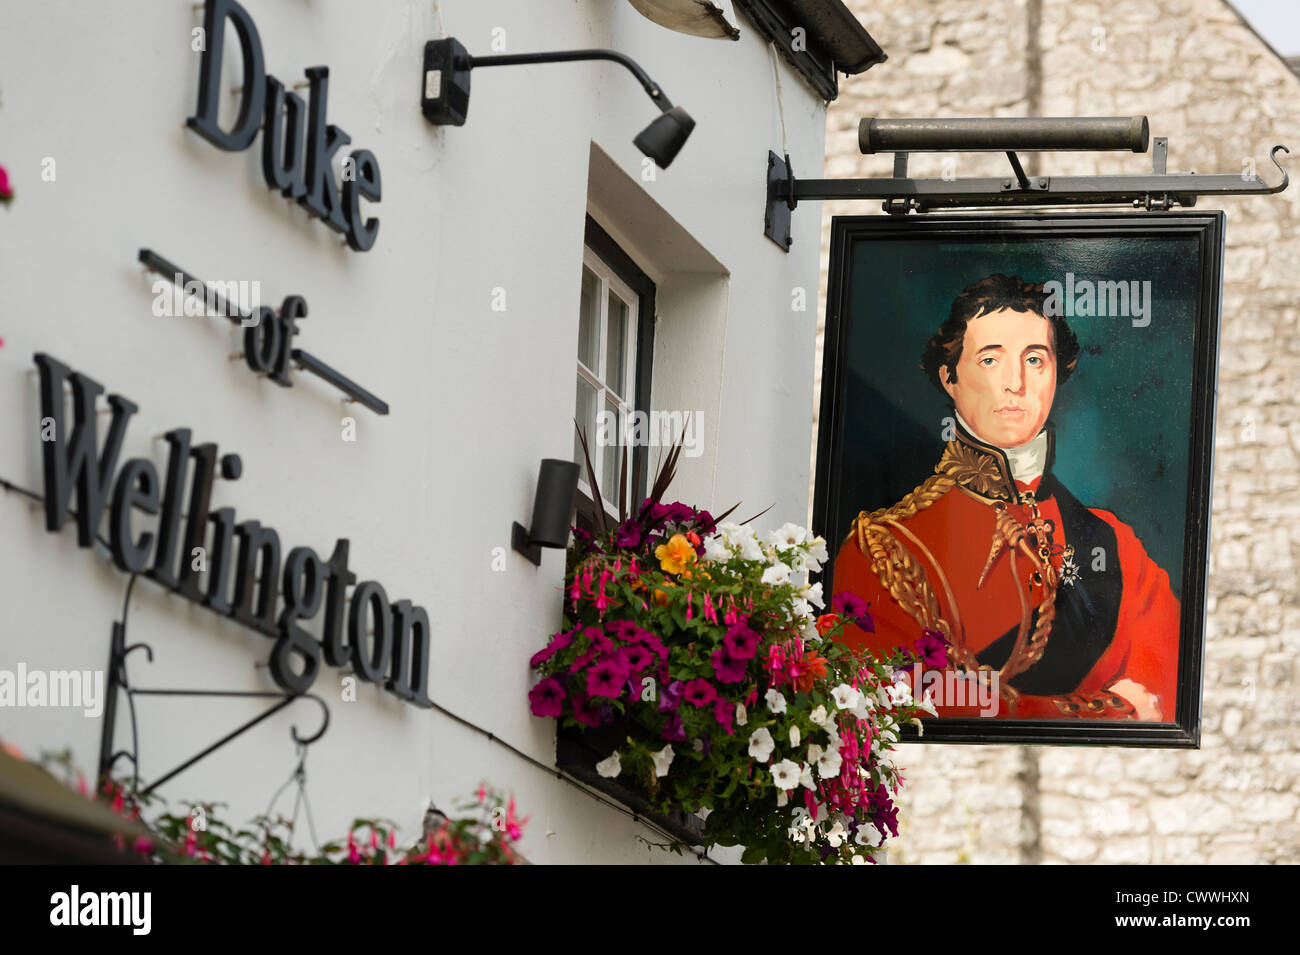 The Duke of Wellington pub, Cowbridge, Vale of Glamorgan, south wales, UK - Stock Image